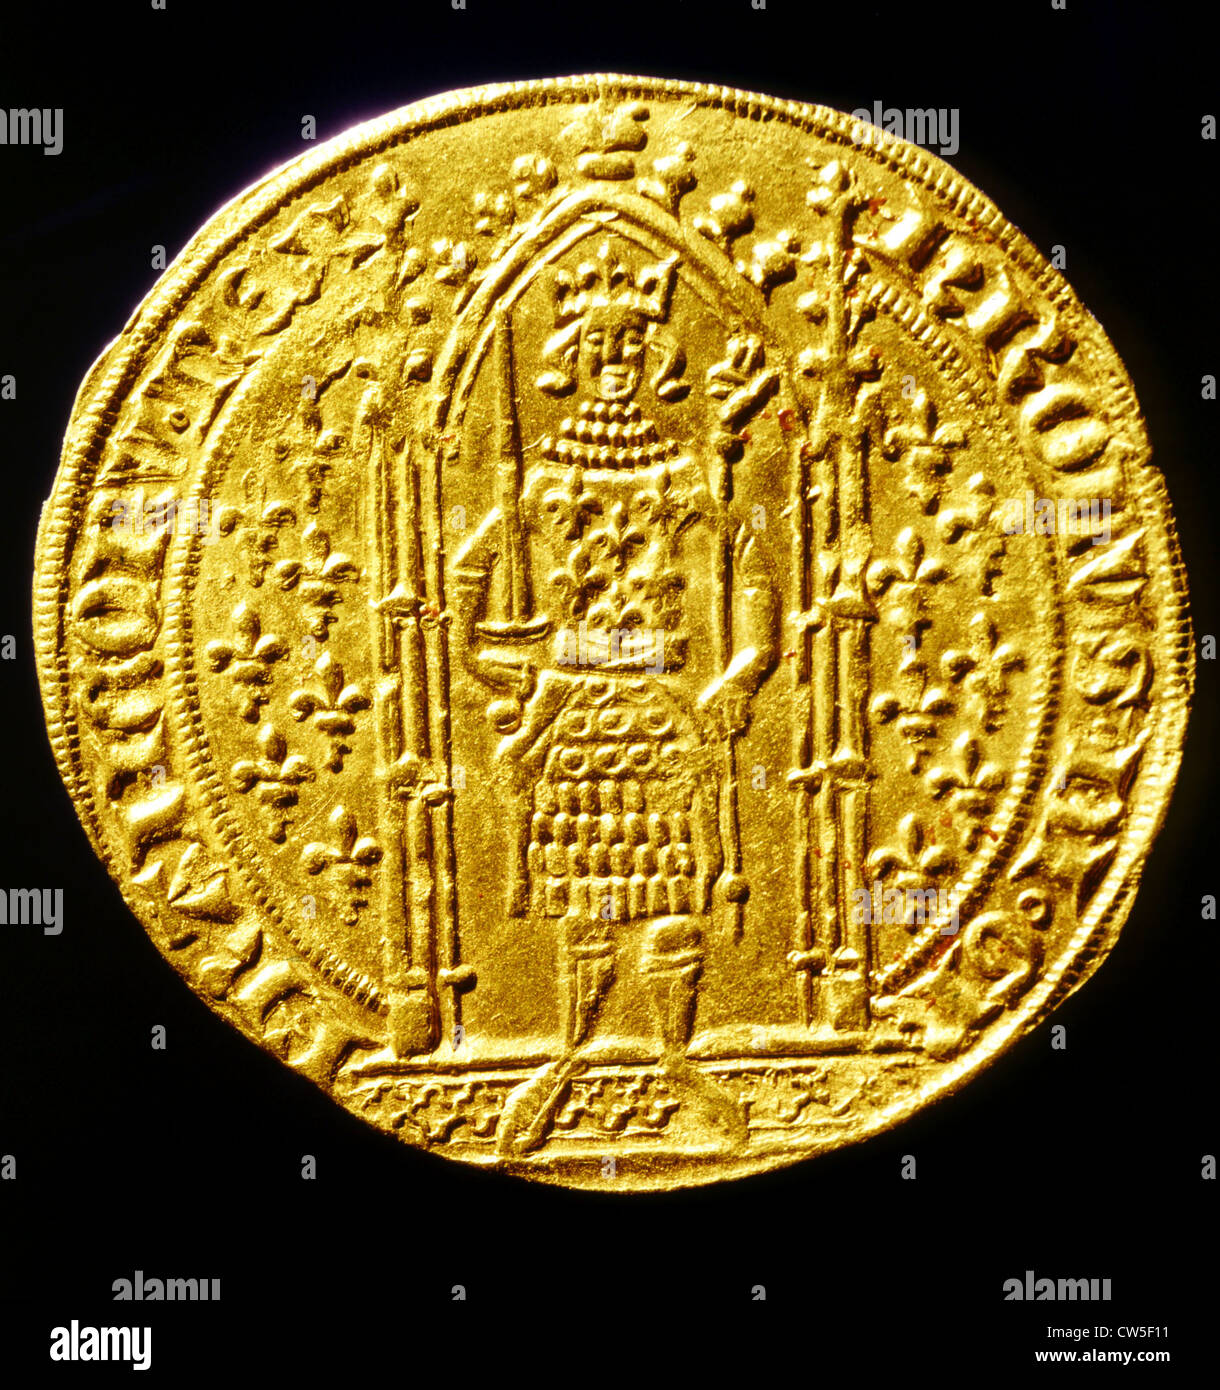 Gold medal of Charles V the Wise (1338-1380) - Stock Image